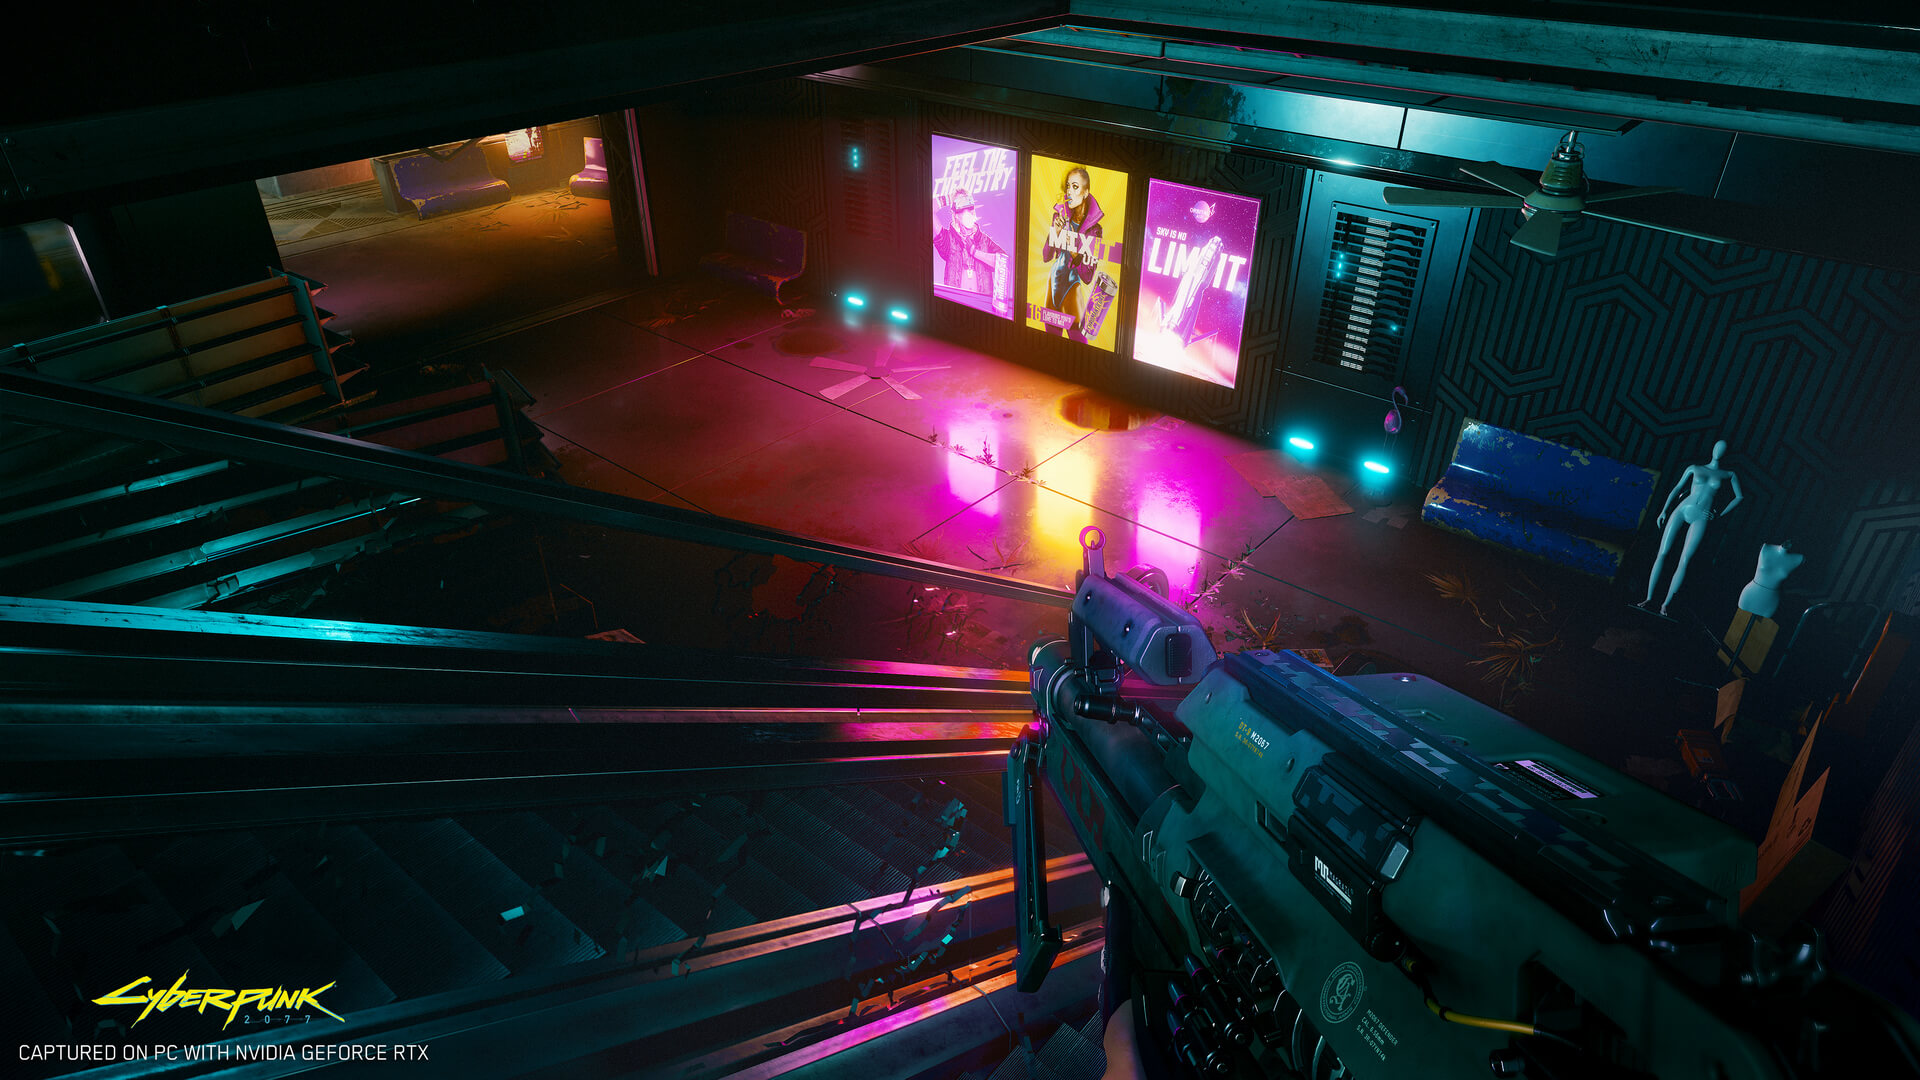 cyberpunk-2077-nvidia-geforce-e3-2019-rtx-on-exclusive-4k-in-game-screenshot-002.jpg